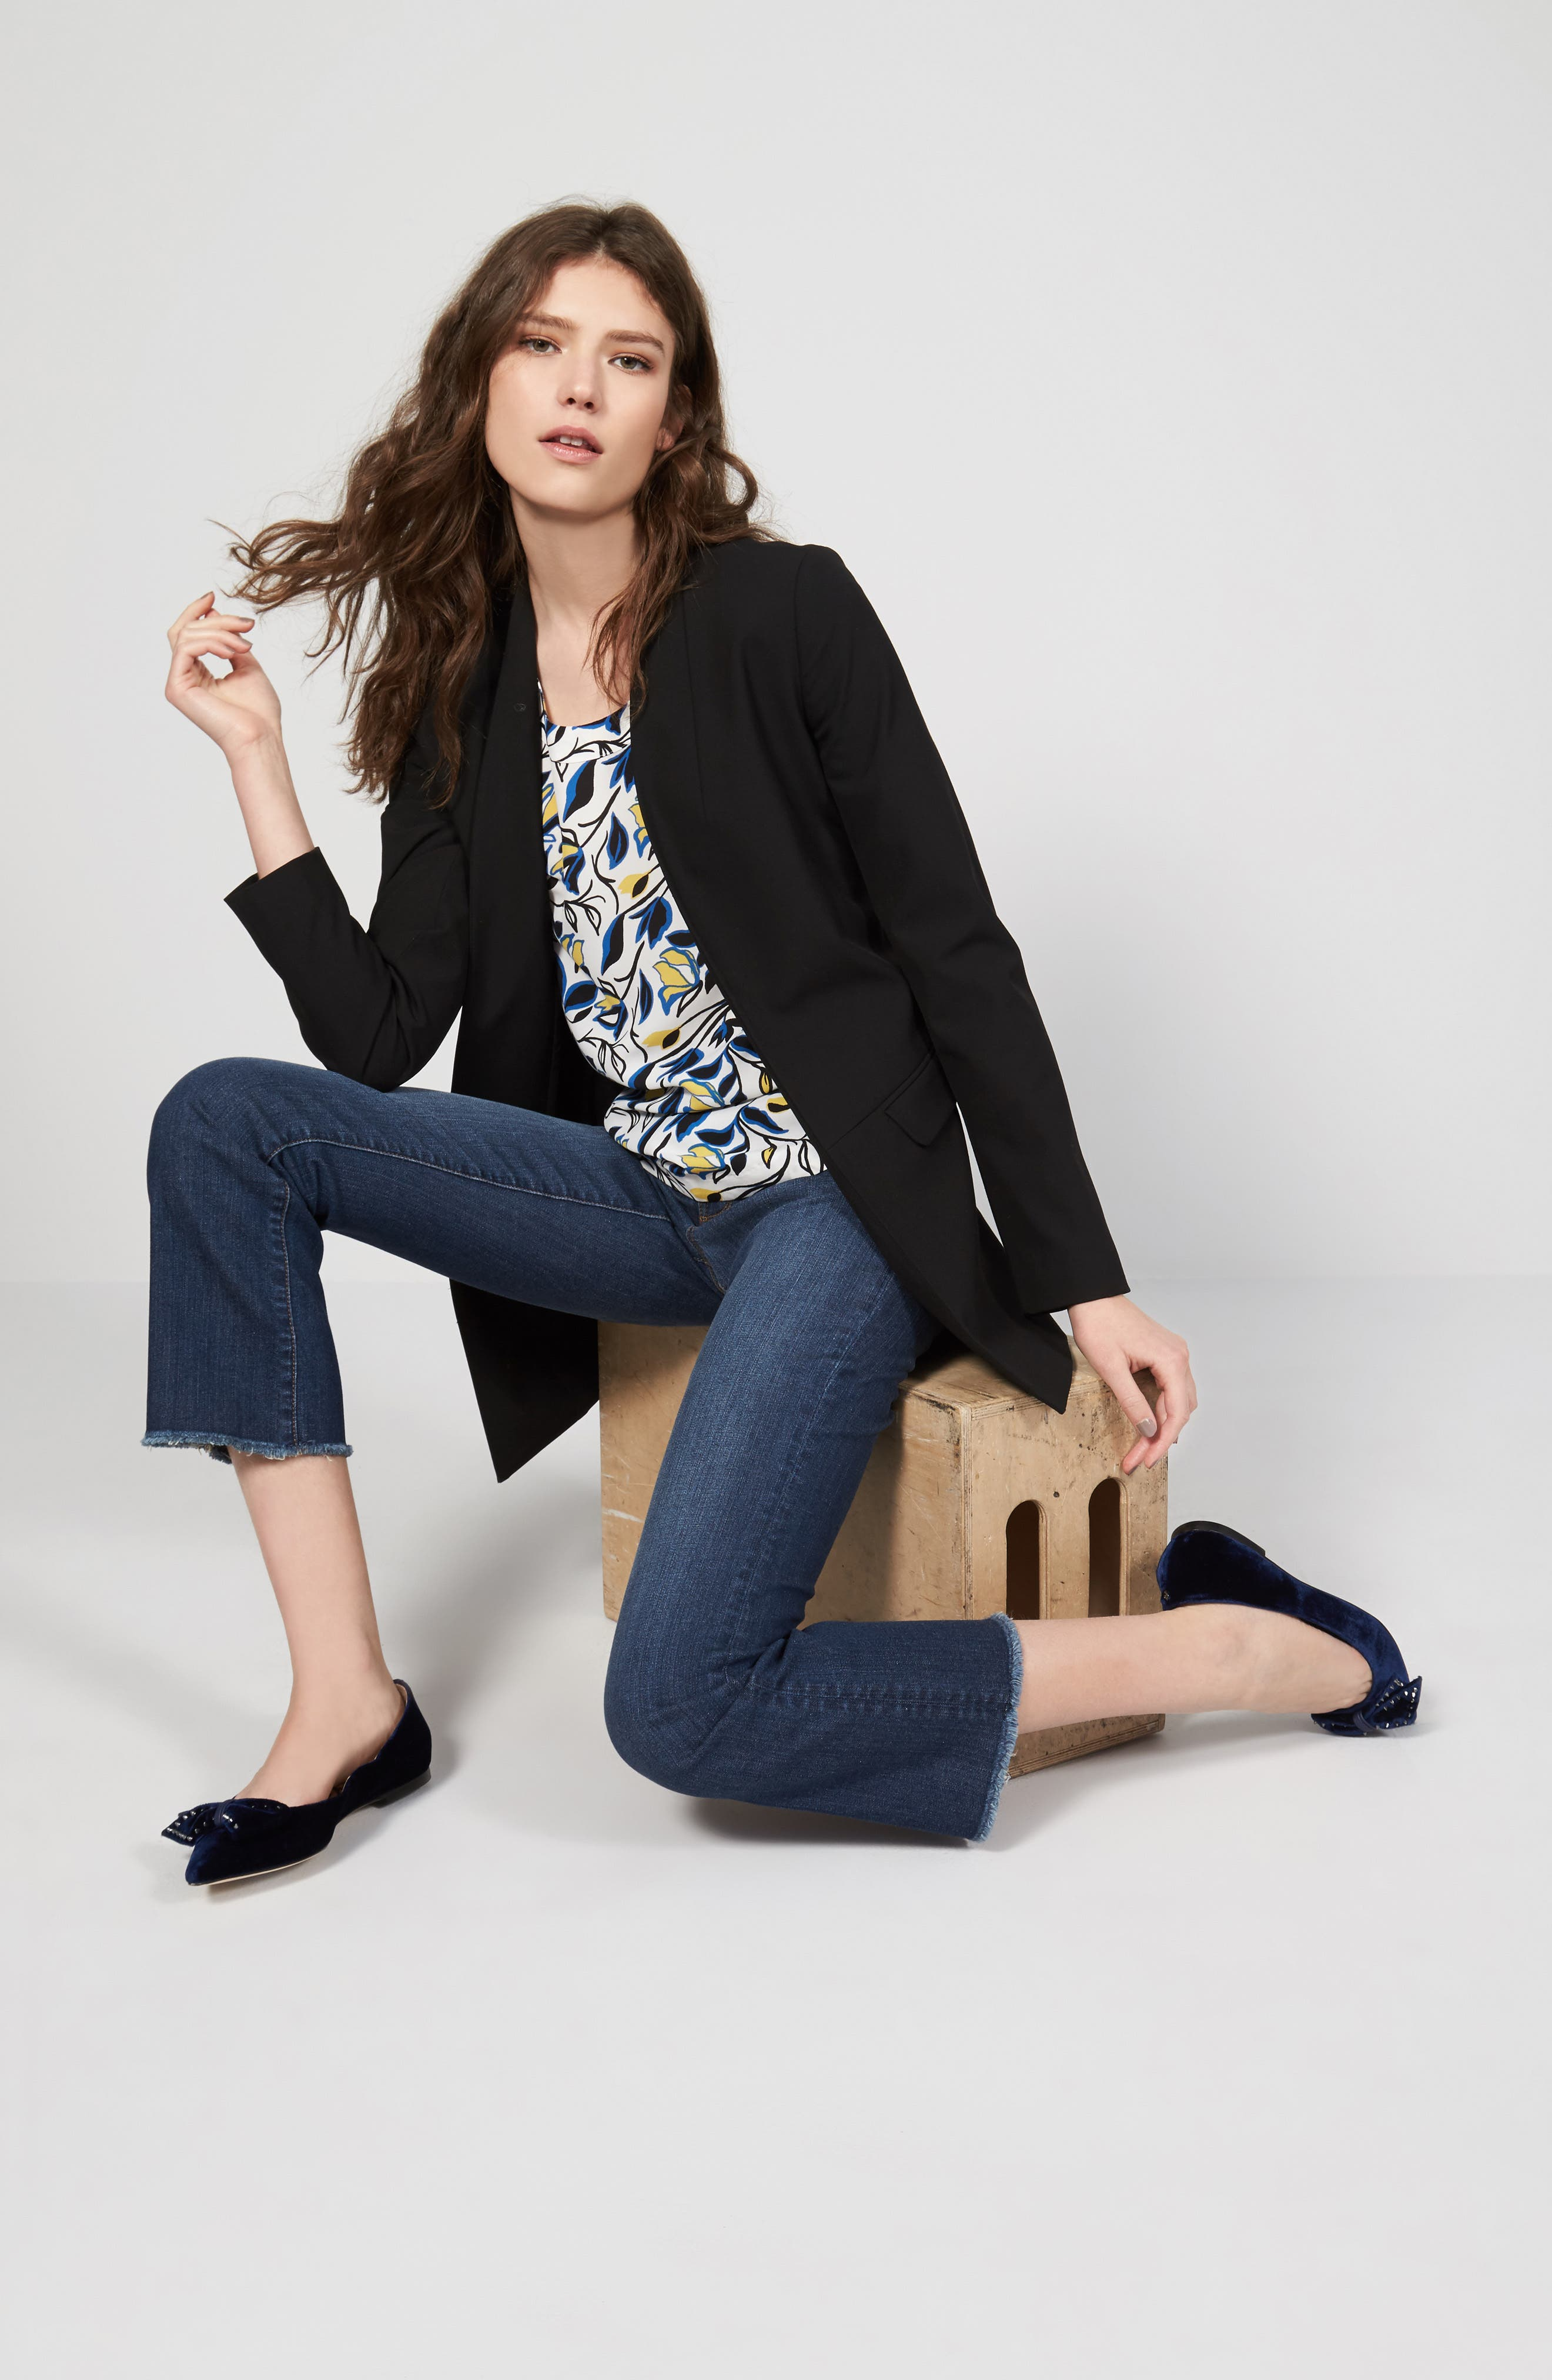 Halogen® Blazer & Top Outfit with Accessories